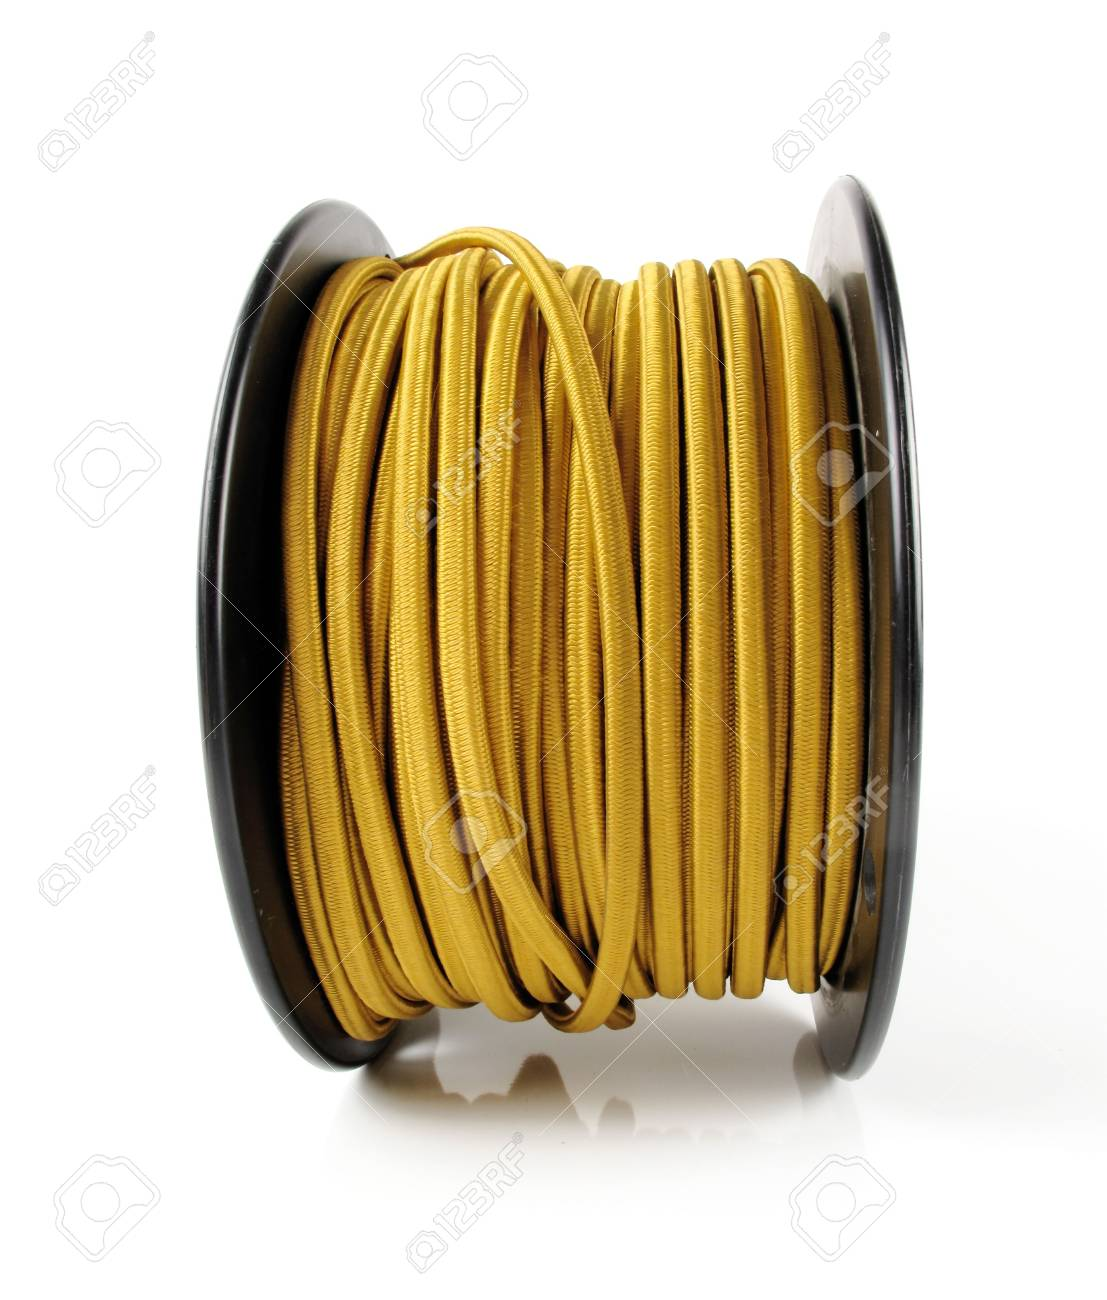 Large spool of yellow wiring primarily used in vintage restoration on